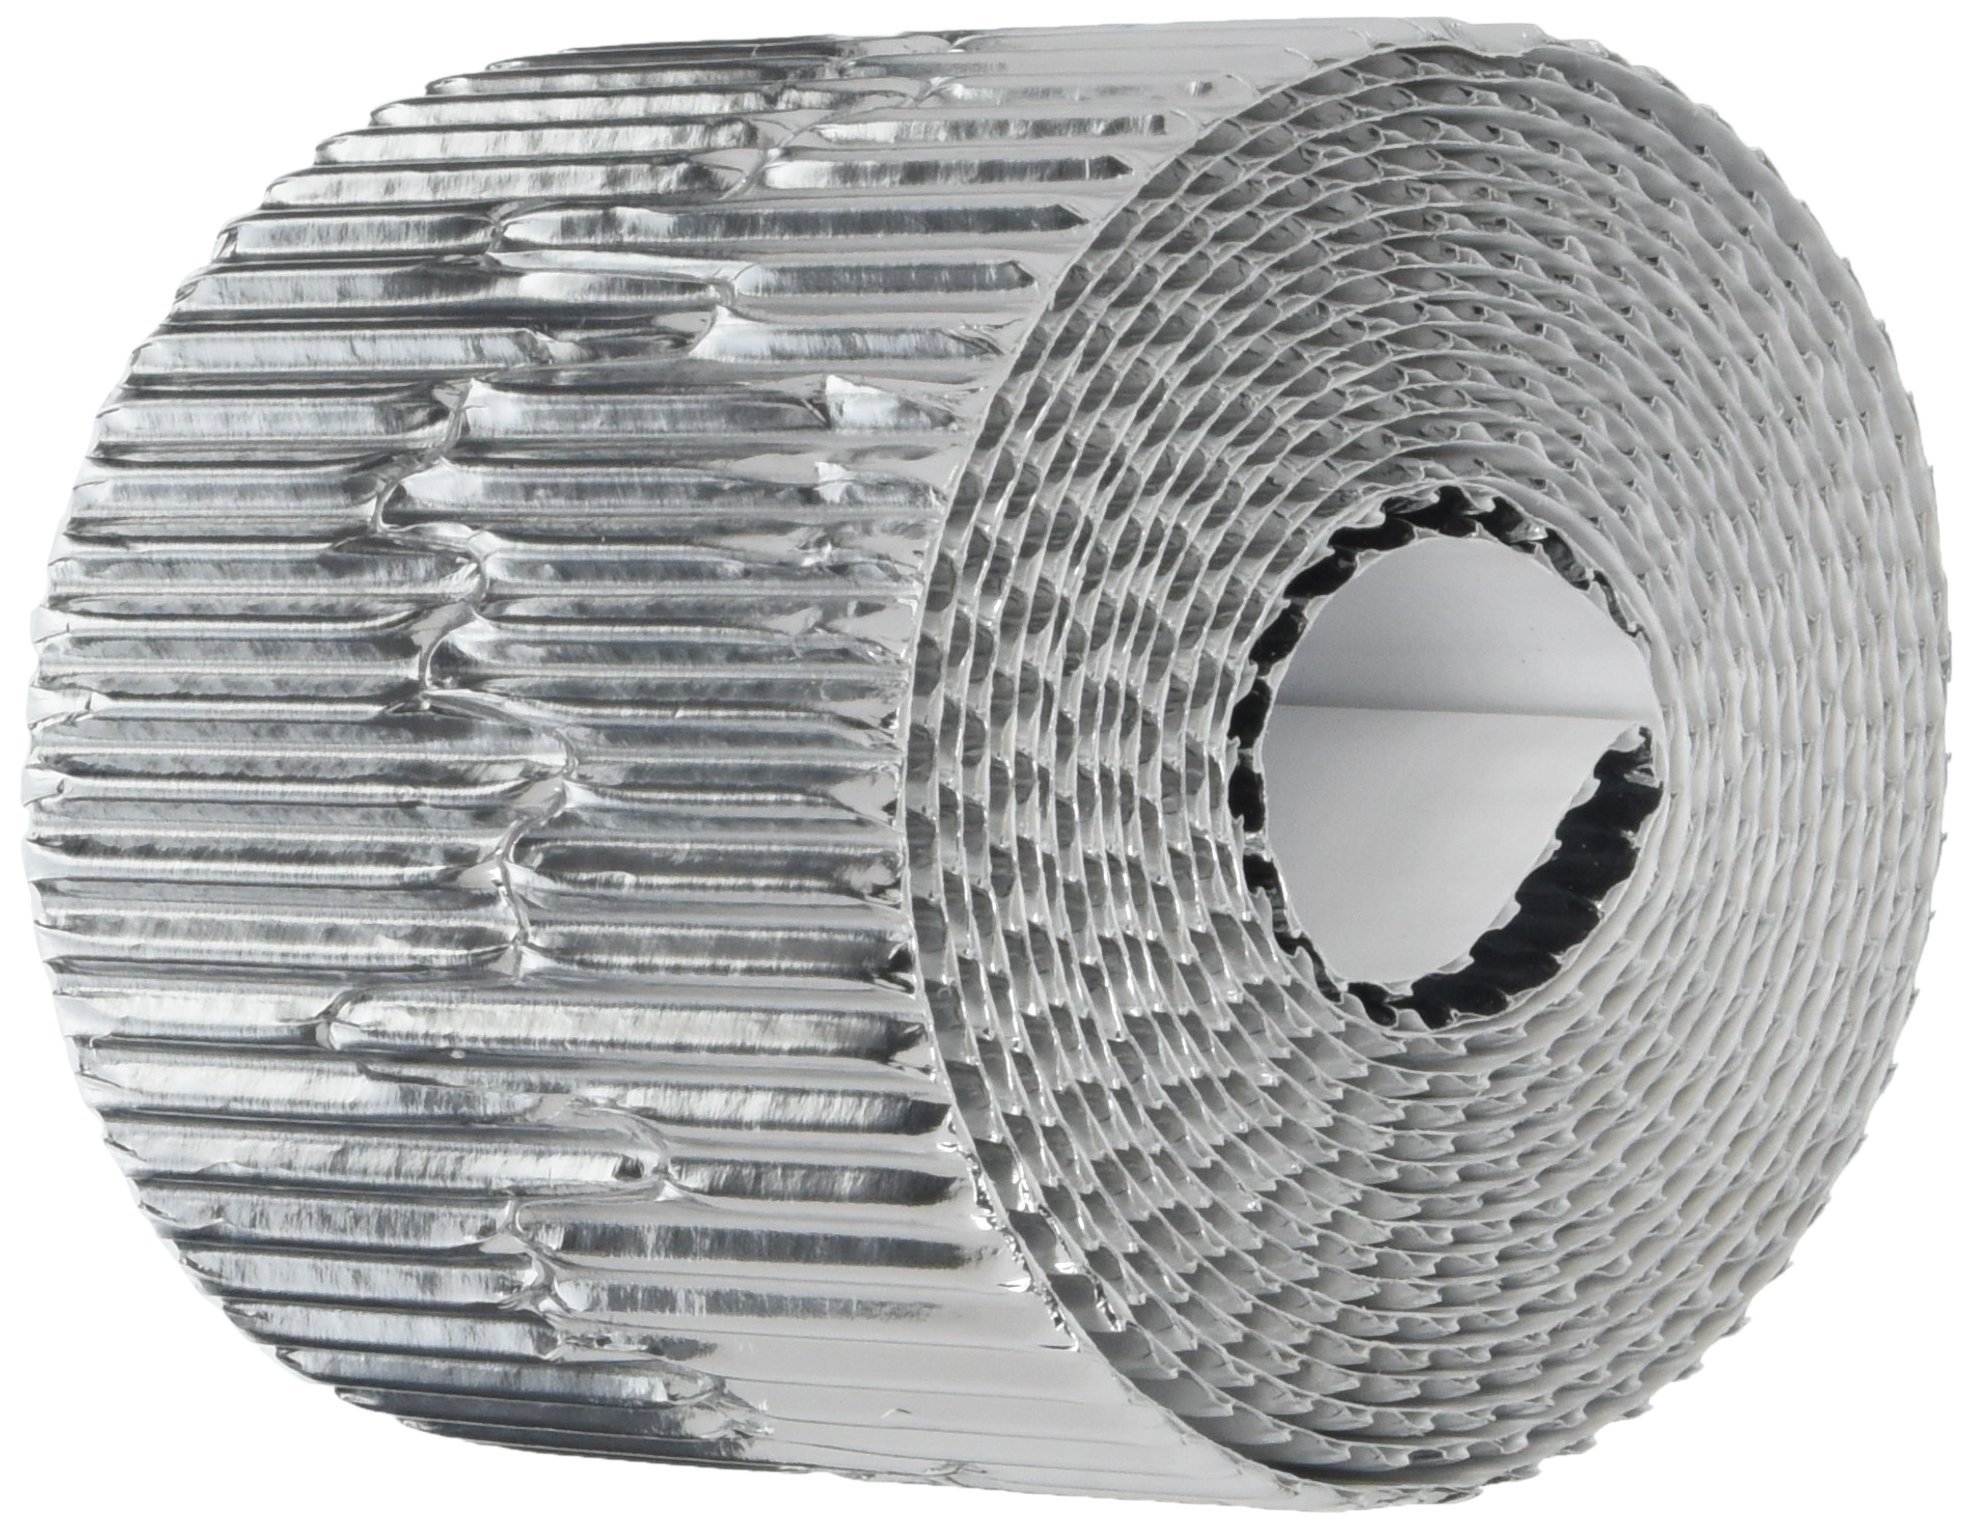 Bordette 0037710 Icicles Border, 2-1/4'' x 25' Size, 4.3'' Width, 4.1'' Length, 3.9'' Height, Metallic Silver